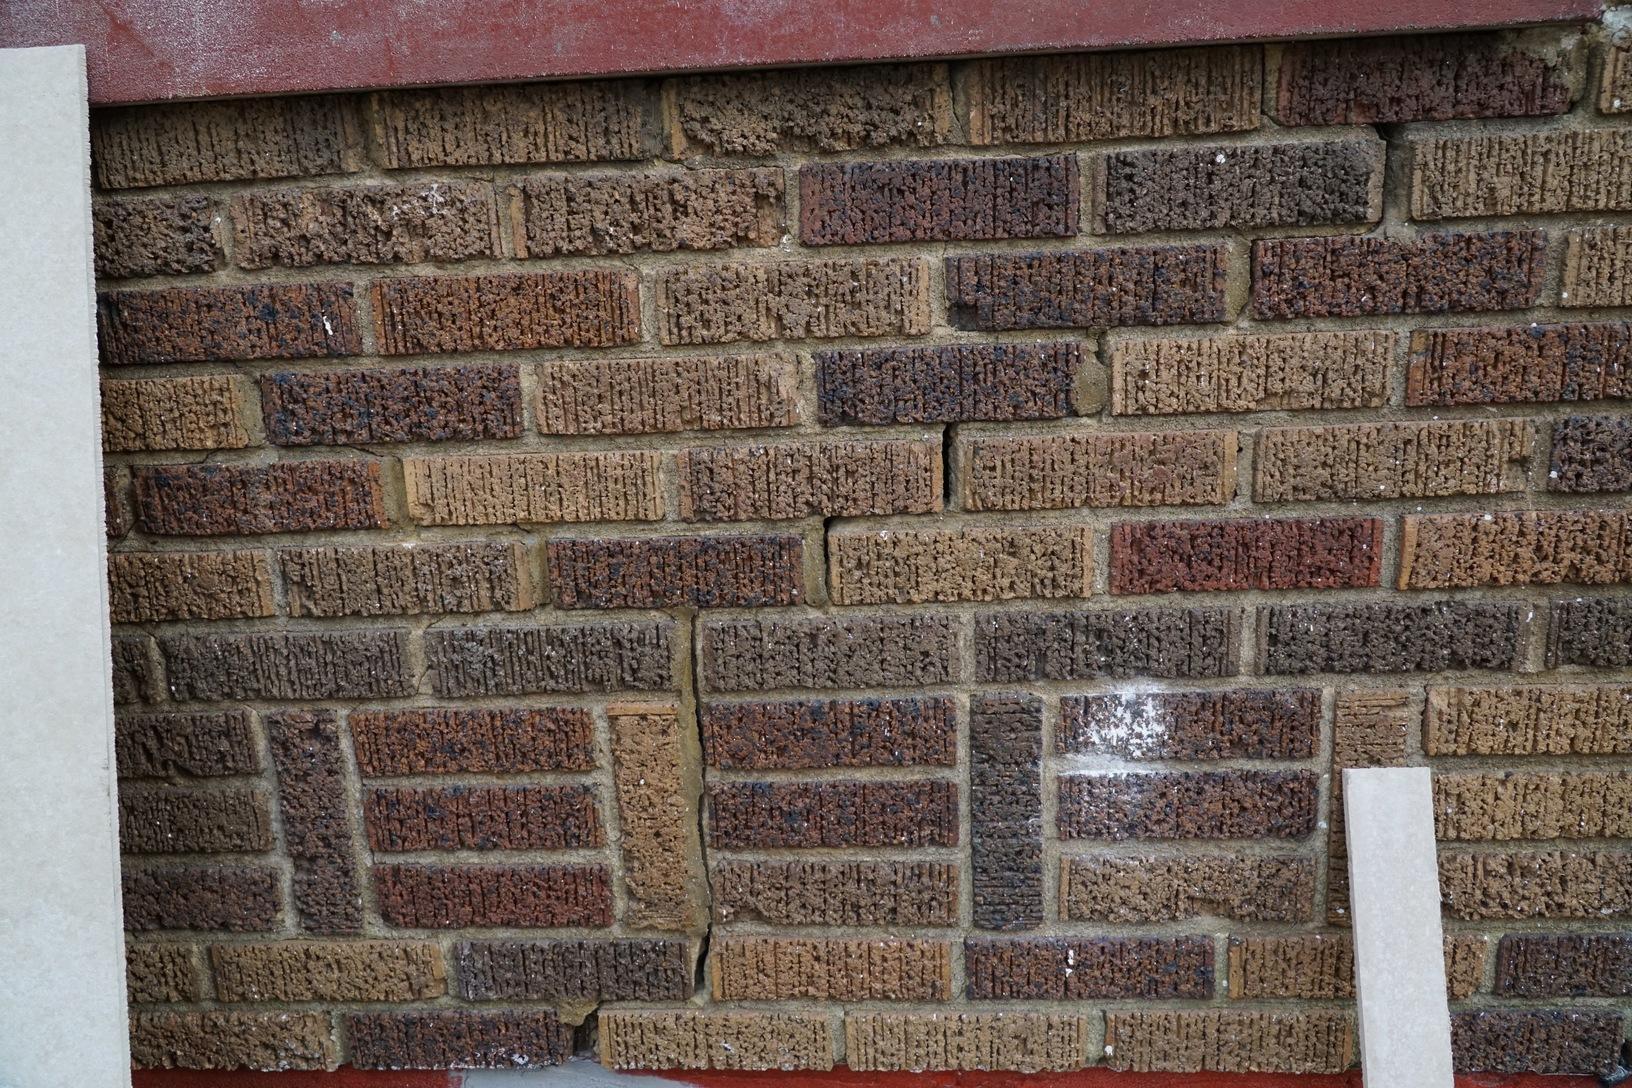 Stair step and vertical cracking in the brick exterior